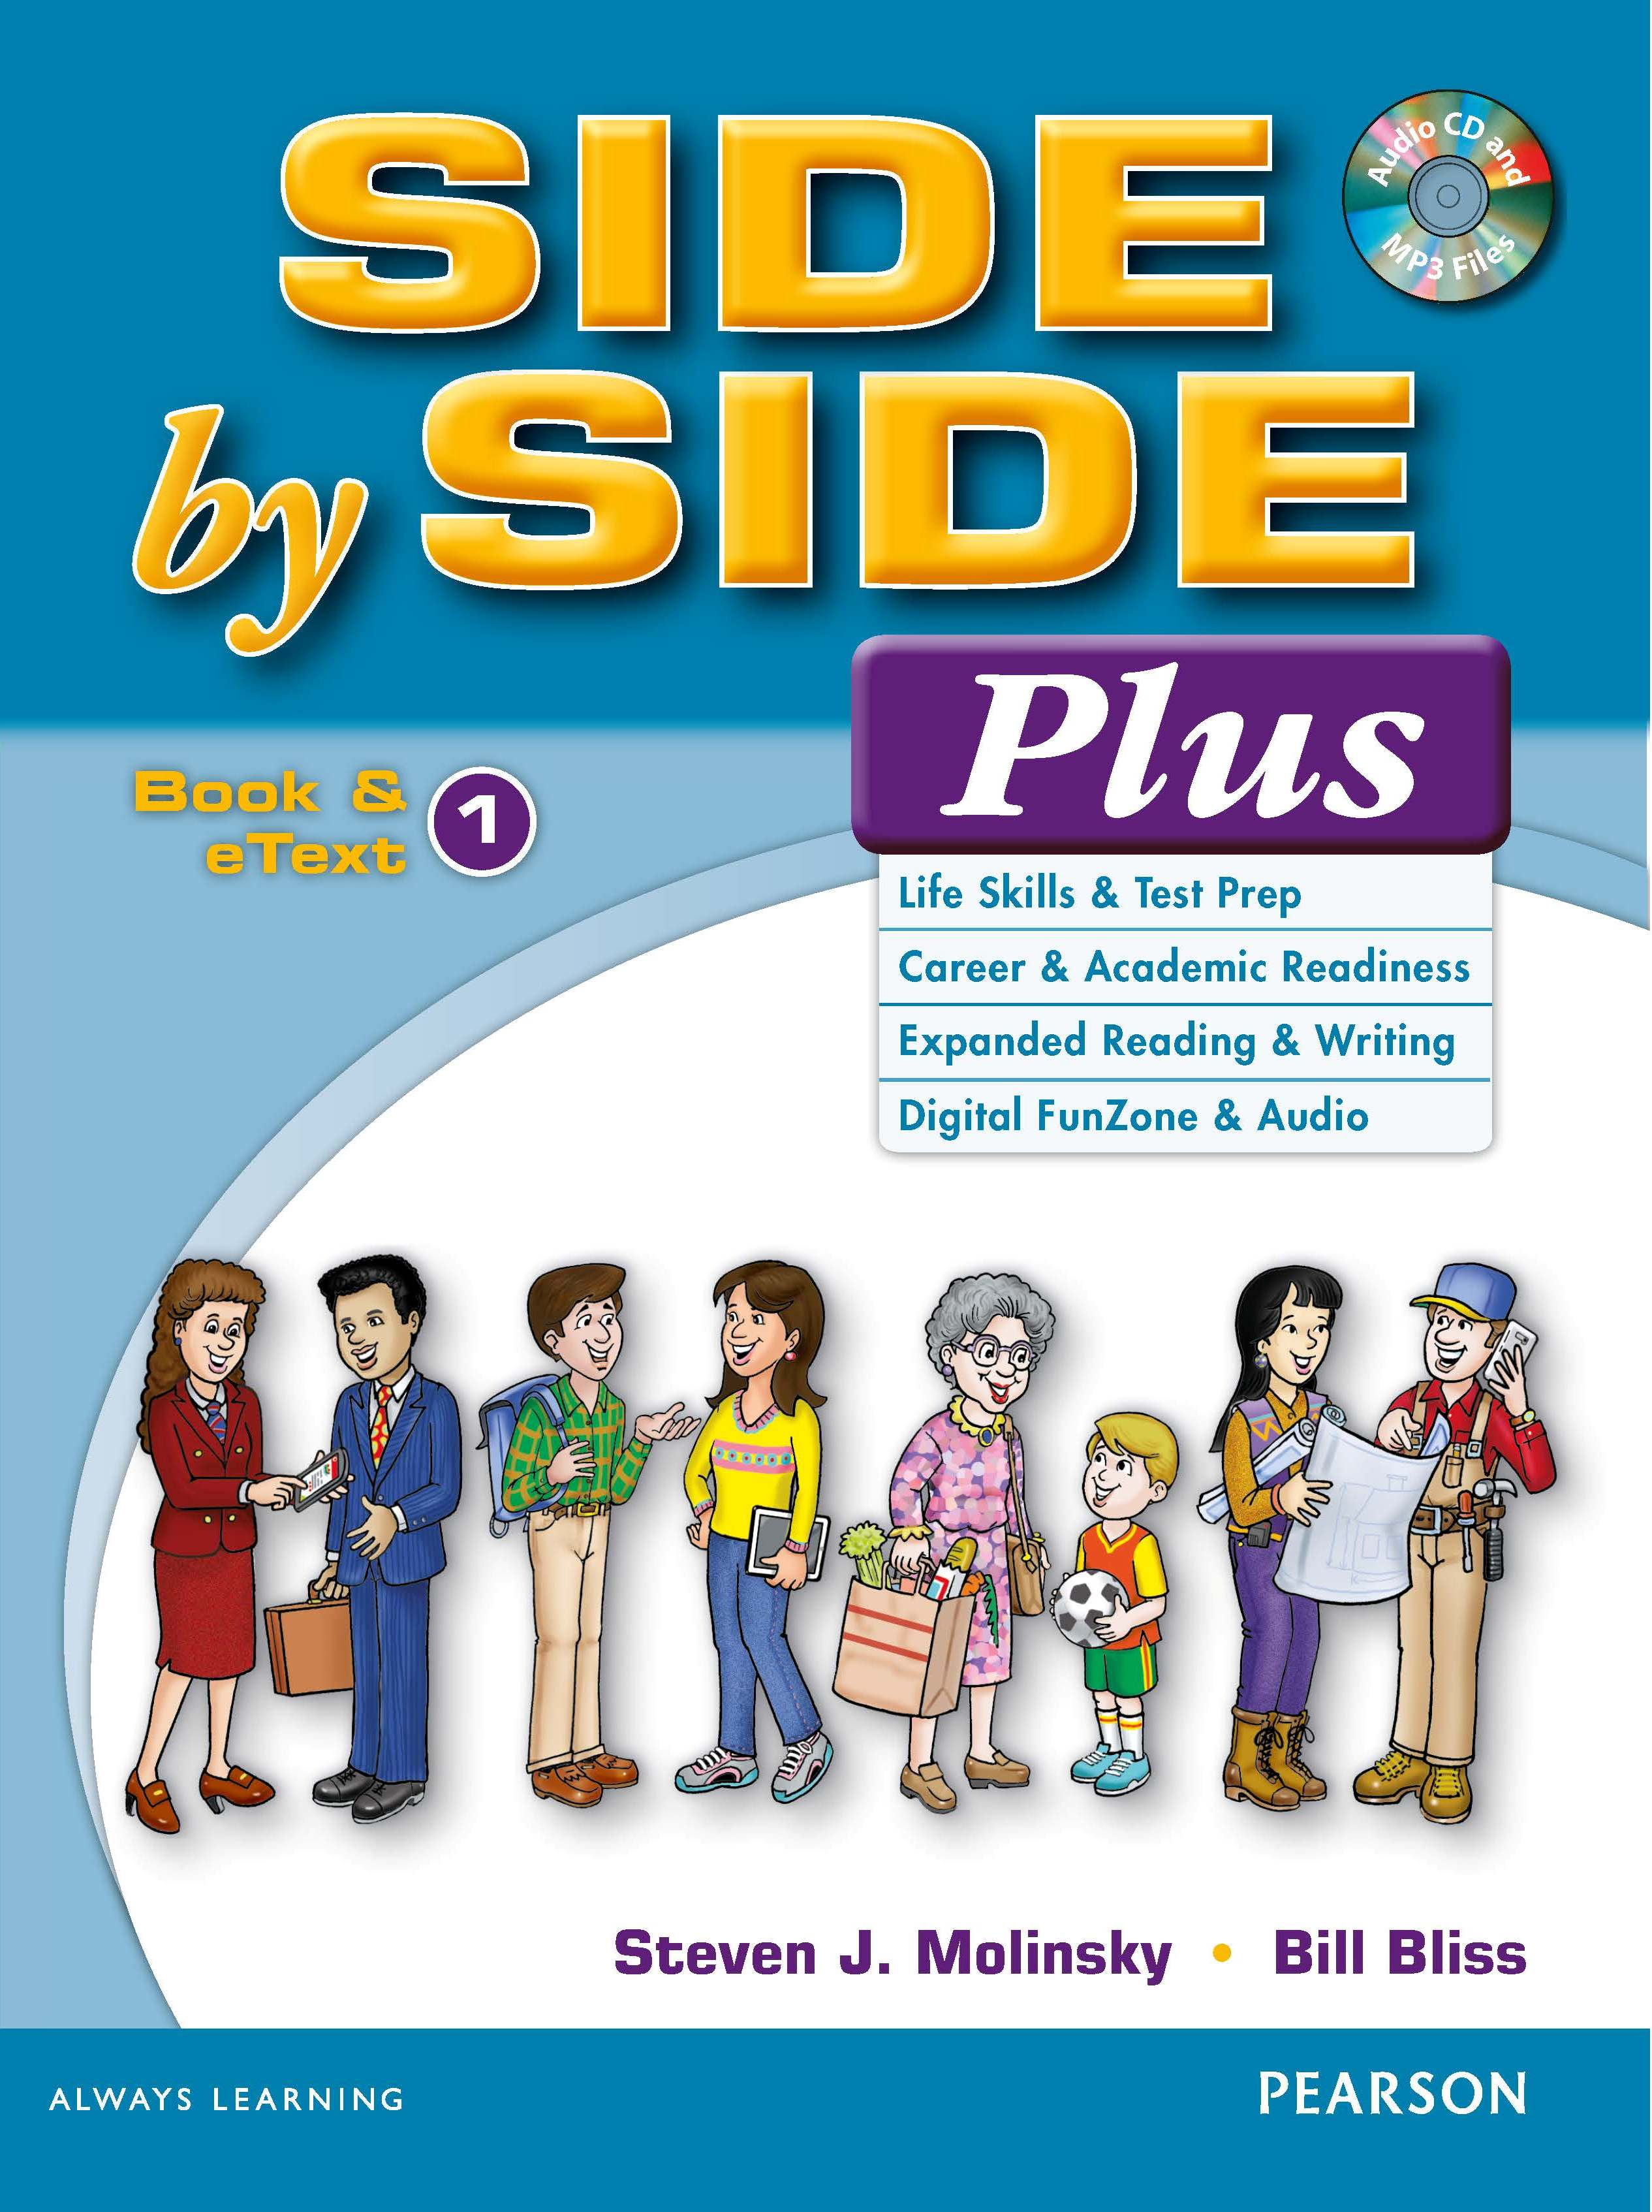 English Course Side by Side Plus Student Book cover Level 1